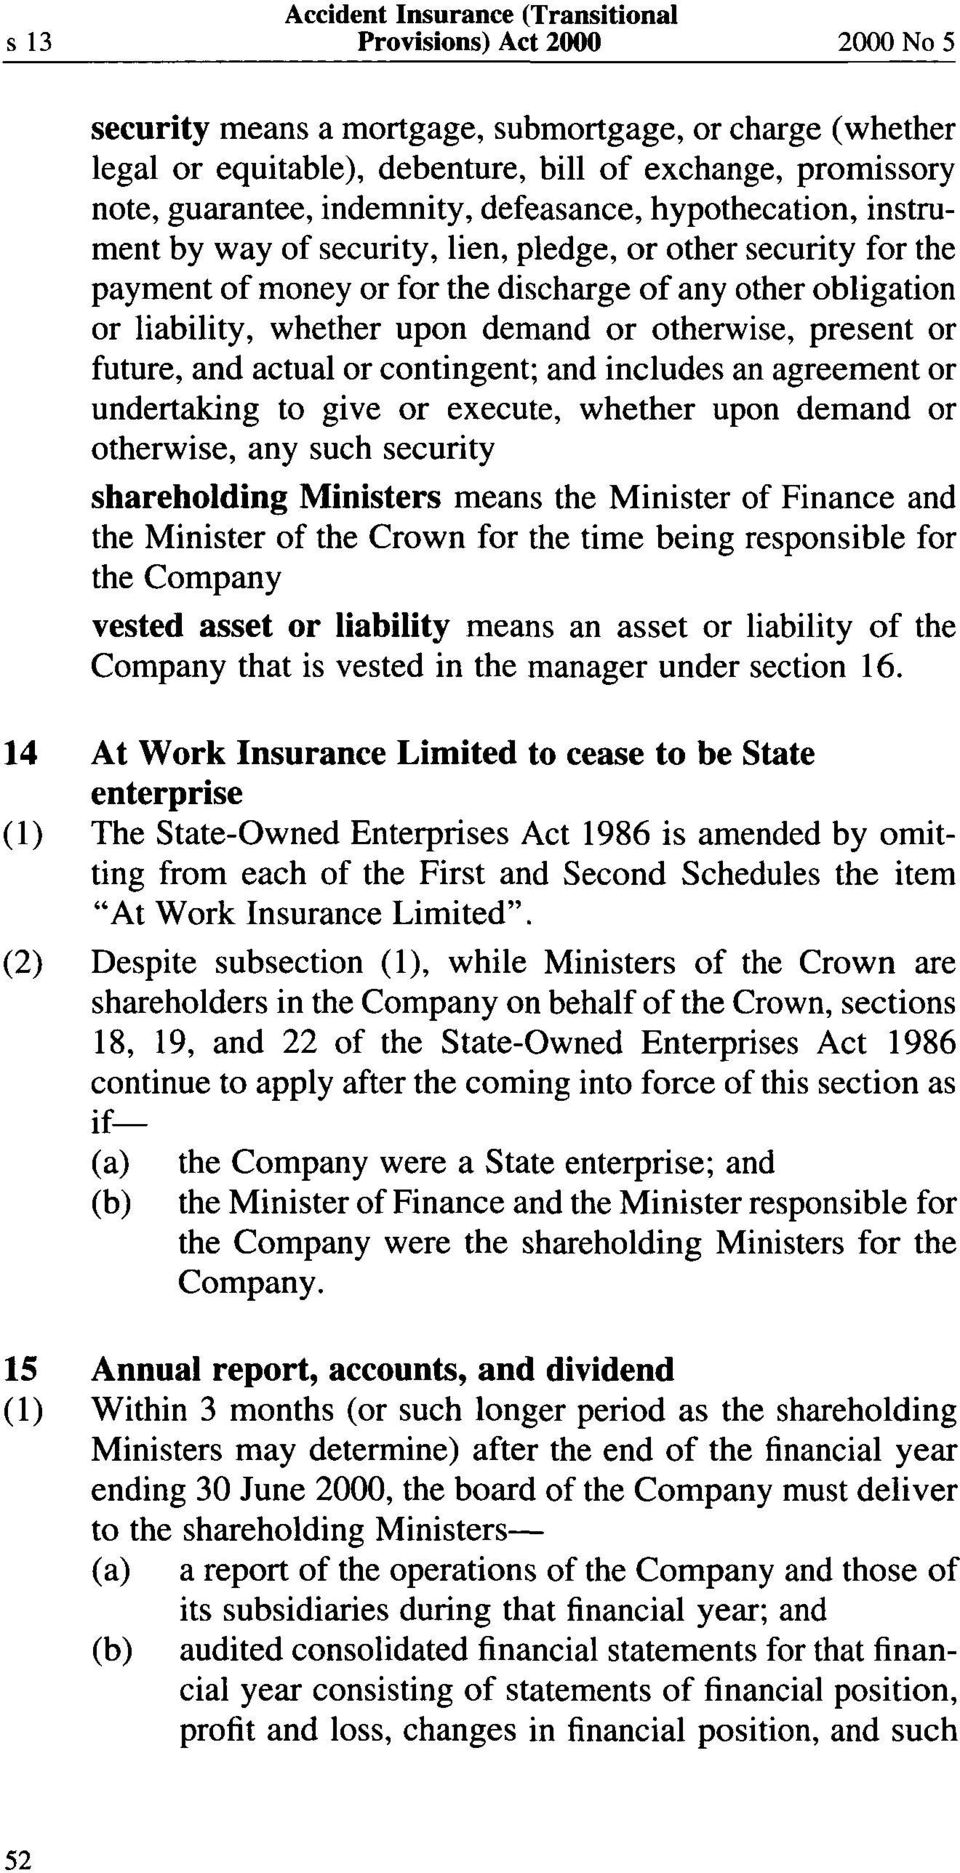 present or future, and actual or contingent; and includes an agreement or undertaking to give or execute, whether upon demand or otherwise, any such security shareholding Ministers means the Minister